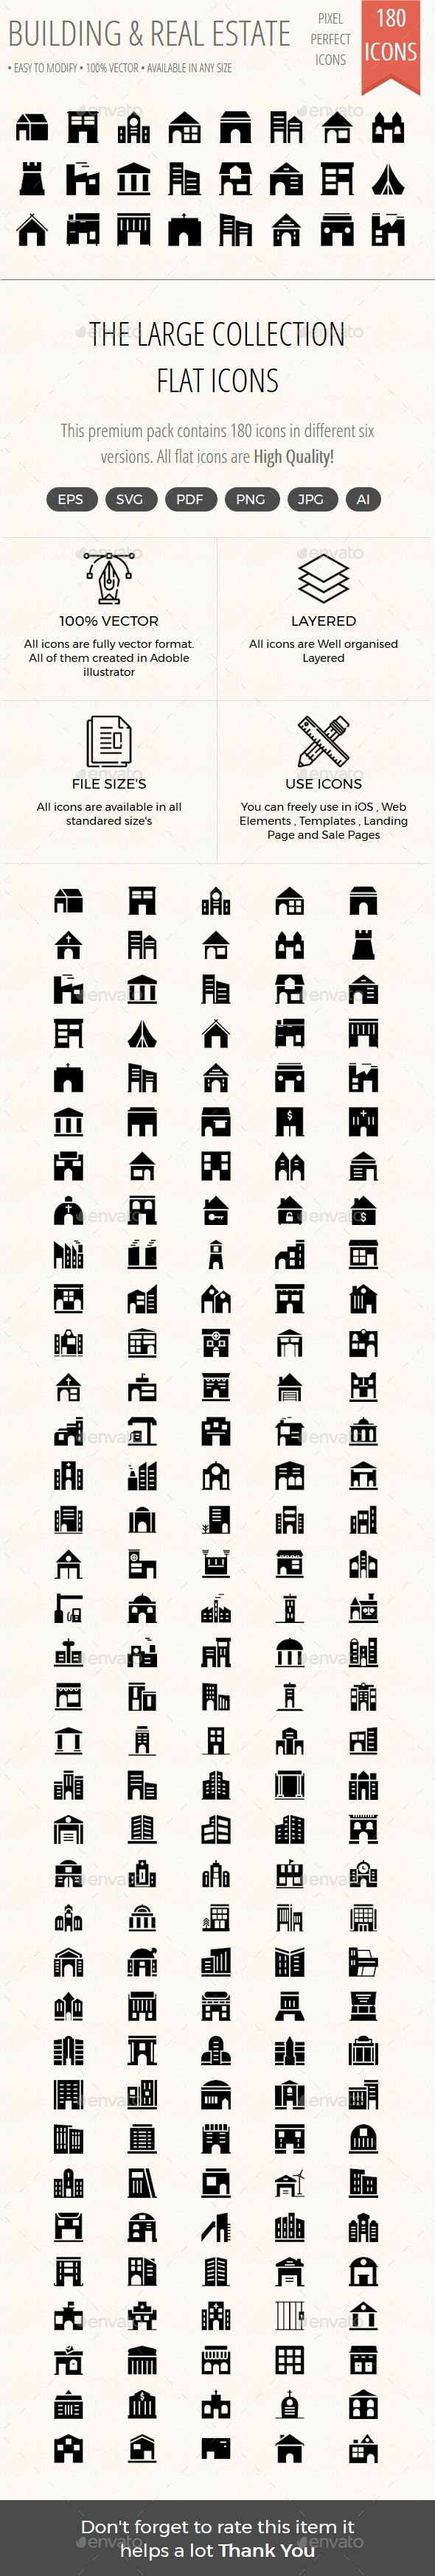 Building and Real Estate Material Icons - Buildings Objects